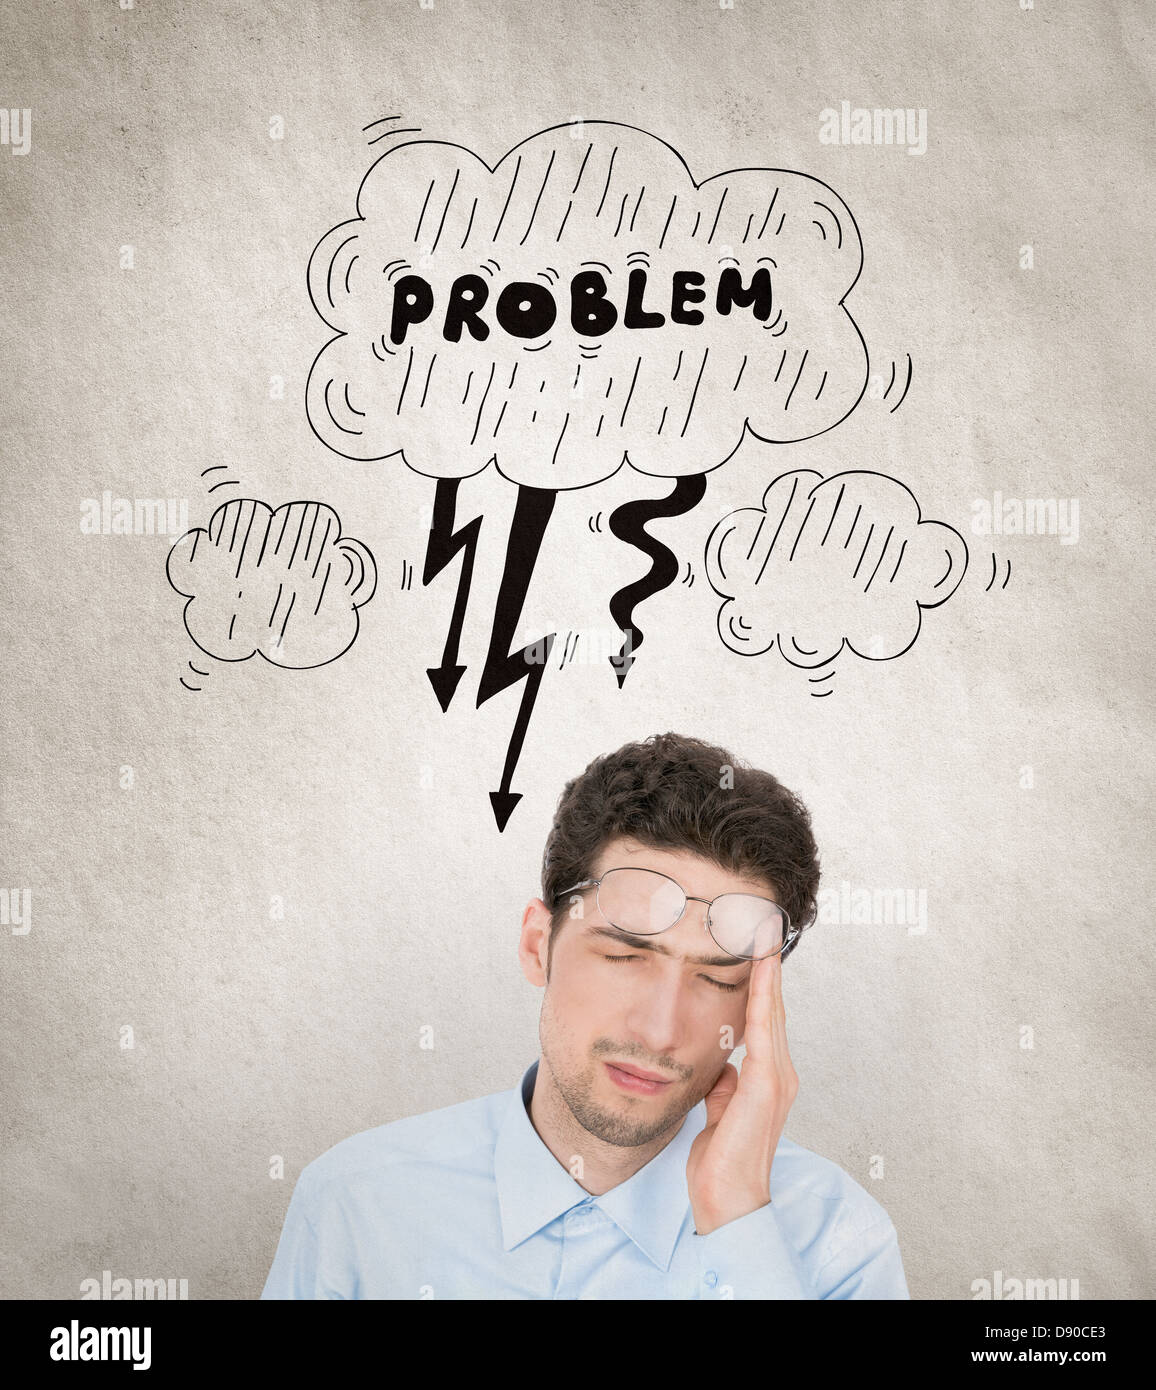 Concept image of handsome young businessman, who has a problem with lot of working tasks to solve and he is overloaded. - Stock Image